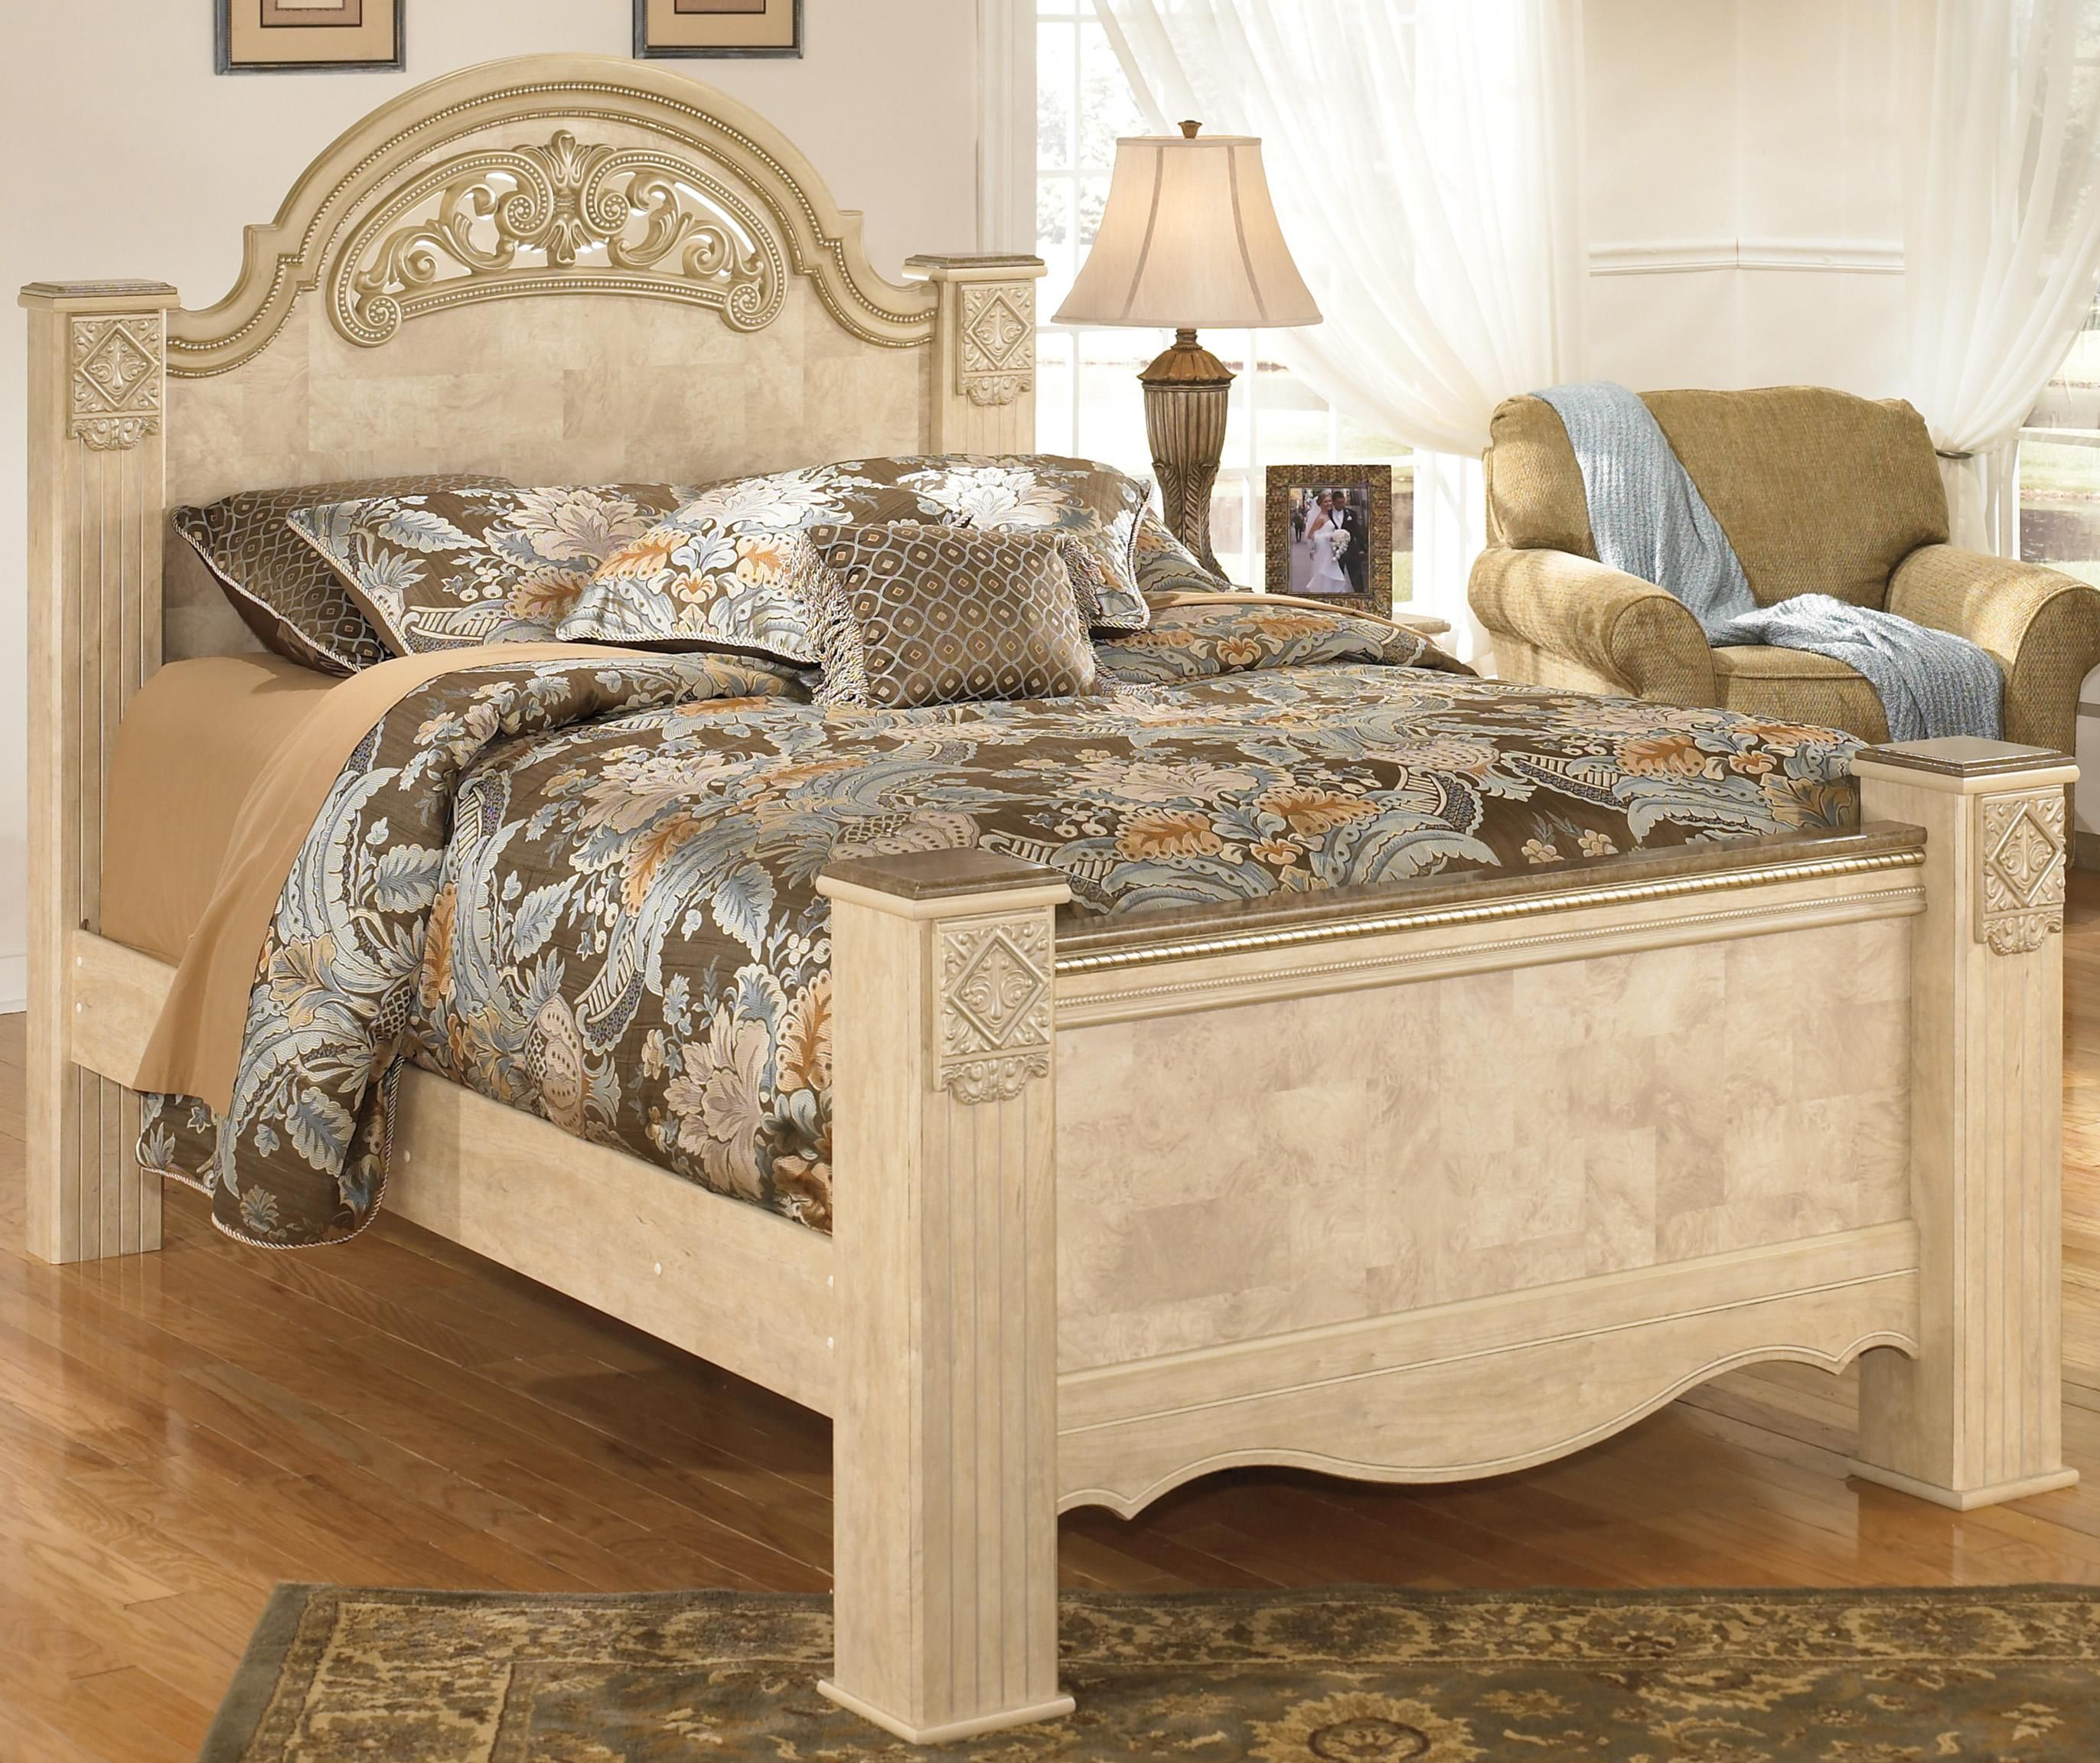 Saveaha Queen Poster Bed By Signature Design By Ashley Available At  RoyalFurniture.com